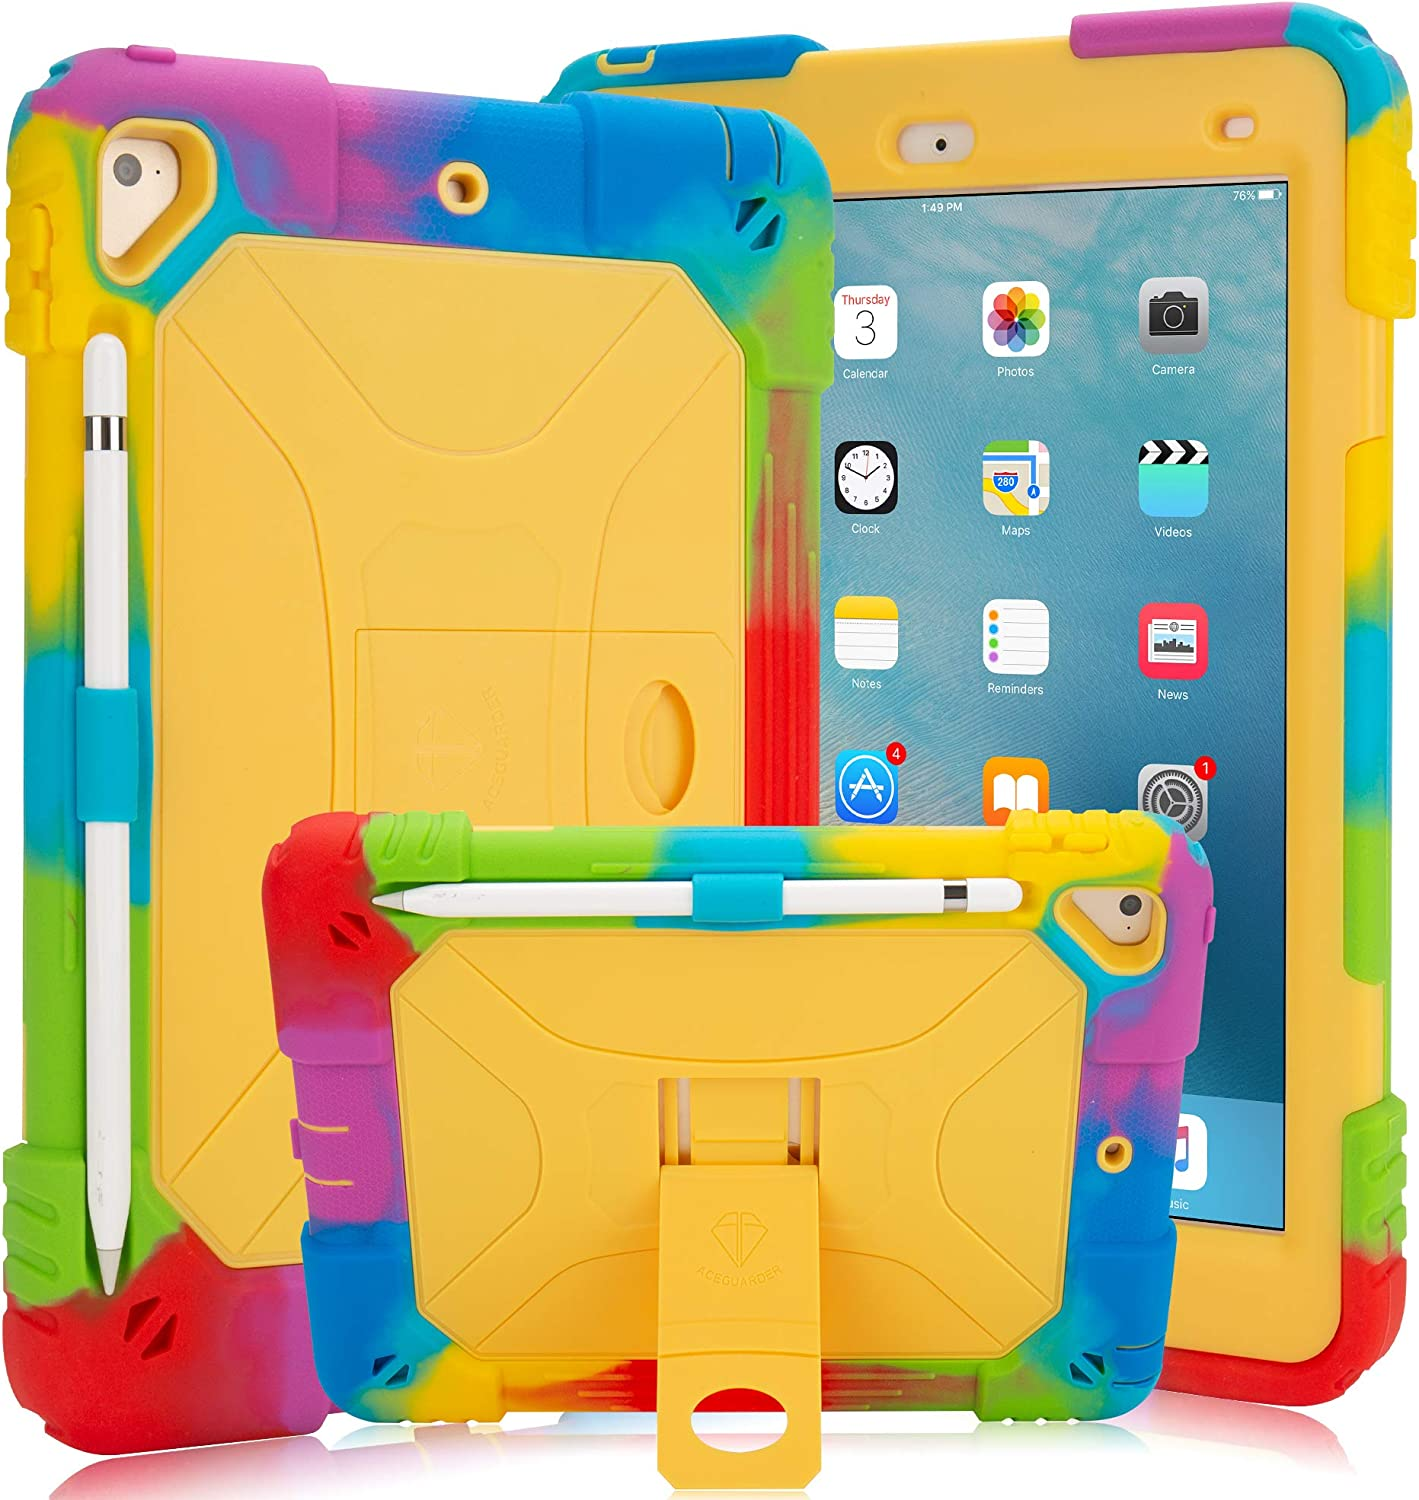 New iPad 9.7 2018/2017 Case iPad 6th/5th Generation Case iPad Air 2 Case with Pencil Holder and Kickstand Heavy Duty Hybrid Shockproof Kids Case Cover for Apple iPad 9.7 inch/Air 2 (Rainbow Yellow)